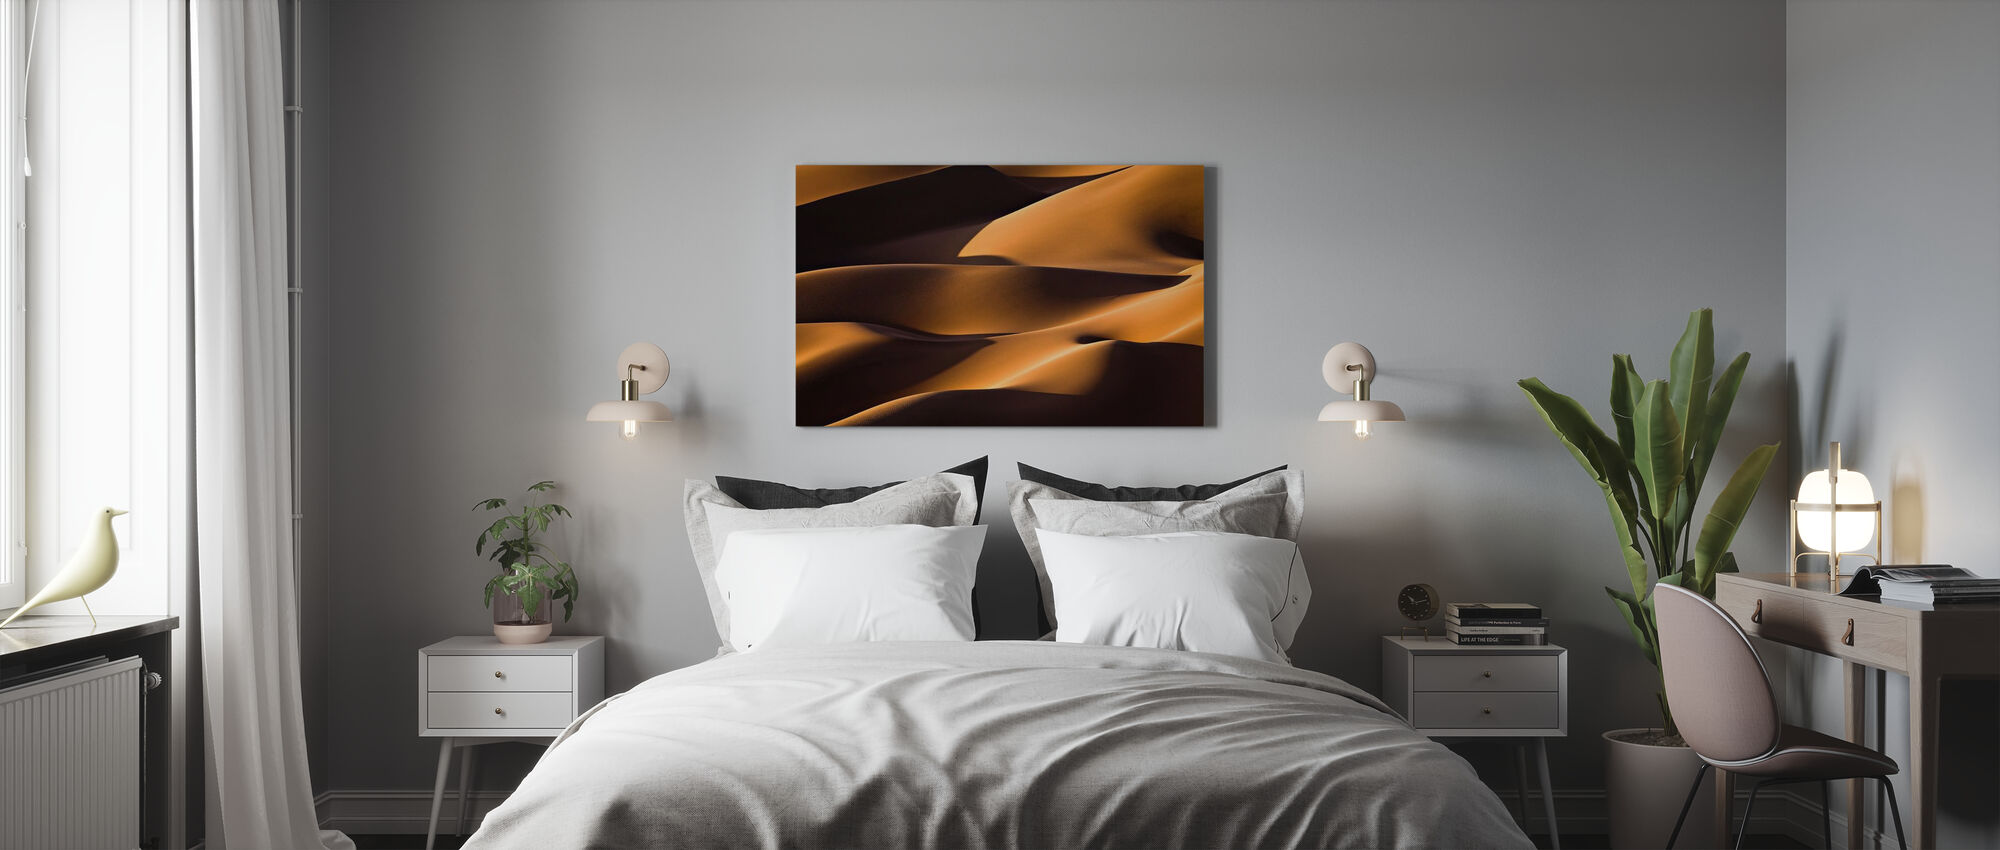 Light and Shadow - Canvas print - Bedroom